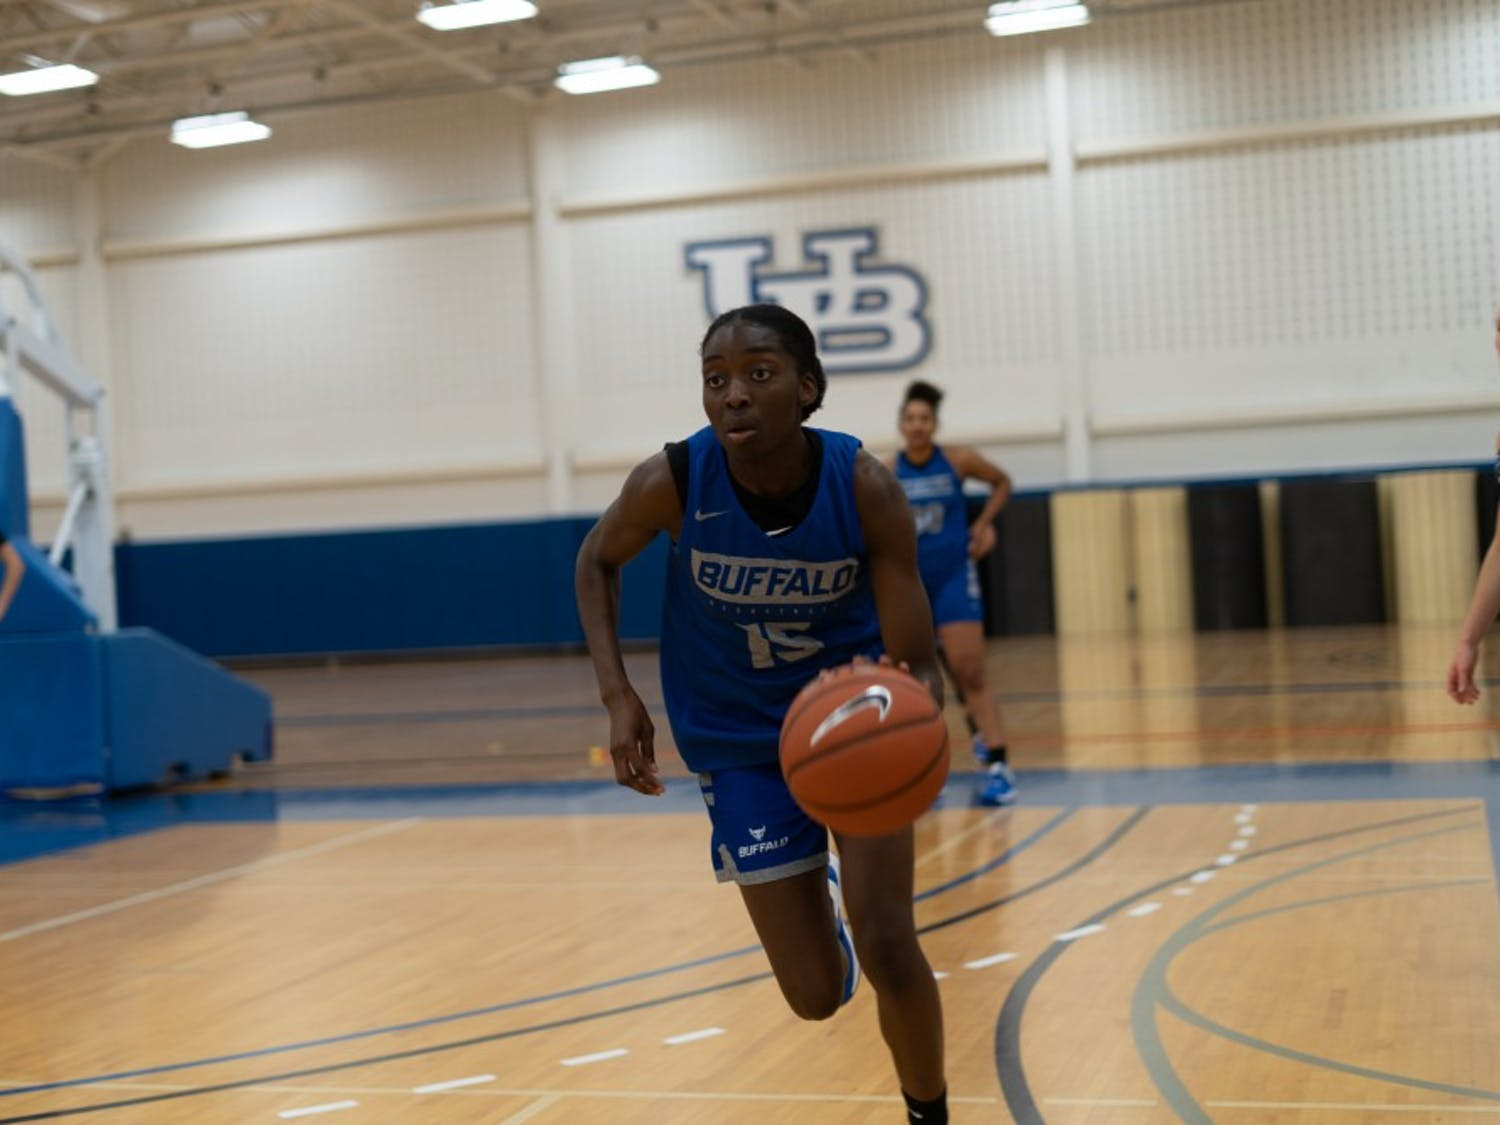 Sophomore Oceane Kounkou dribbling the ball during a practice session.